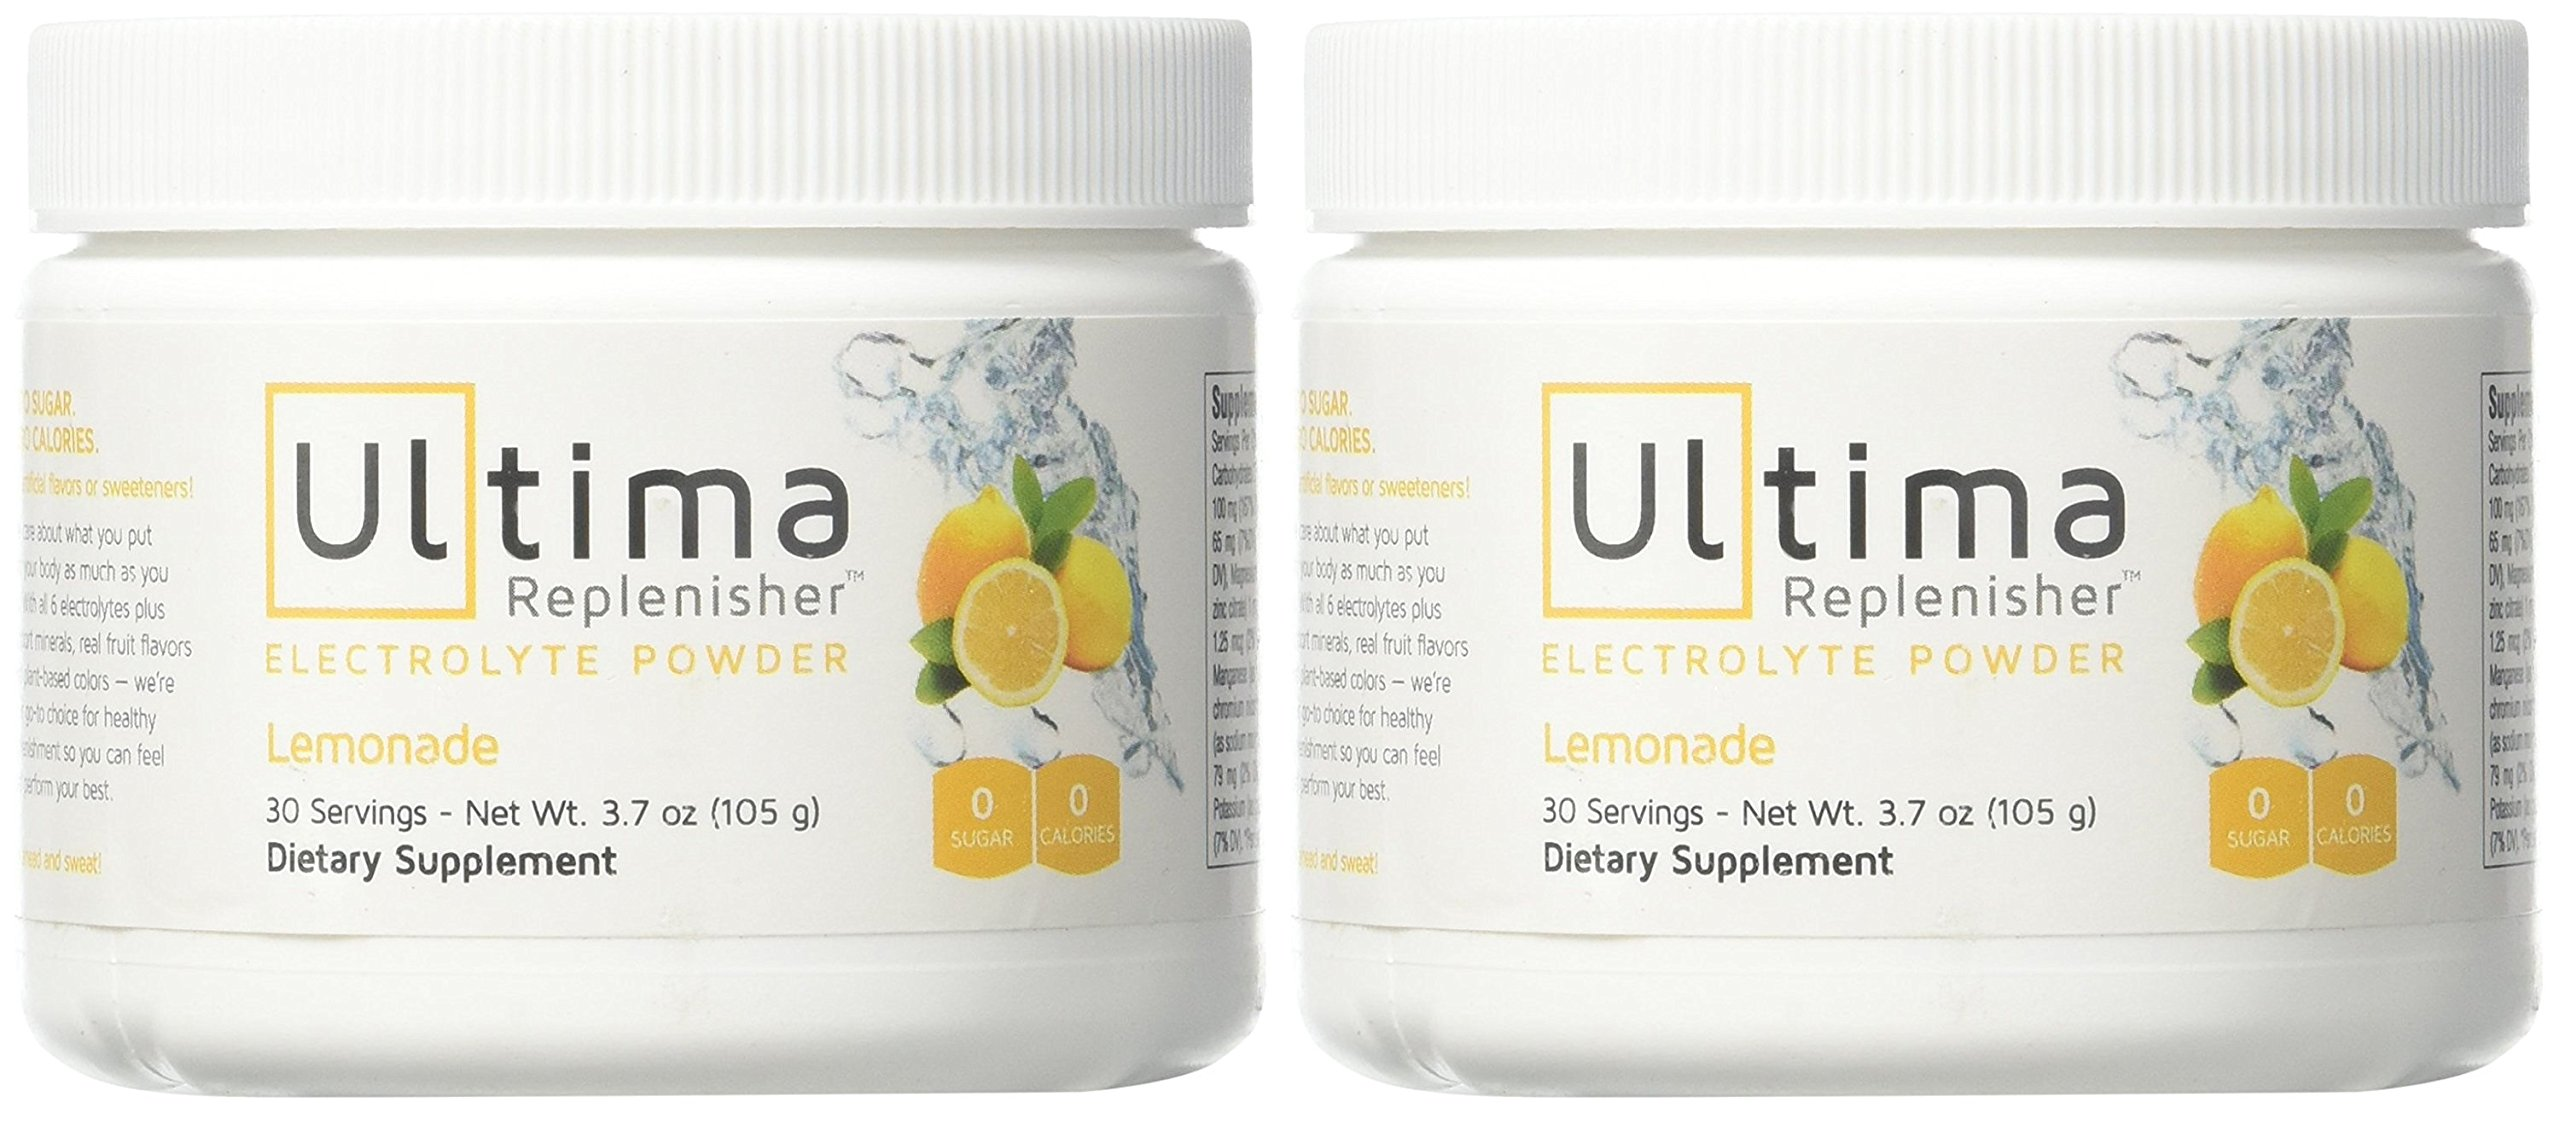 Ultima Replenisher Electrolyte Powder 30 Serving Canister, Lemonade, 3.7 Ounce (2-Pack) by Ultima Replenisher